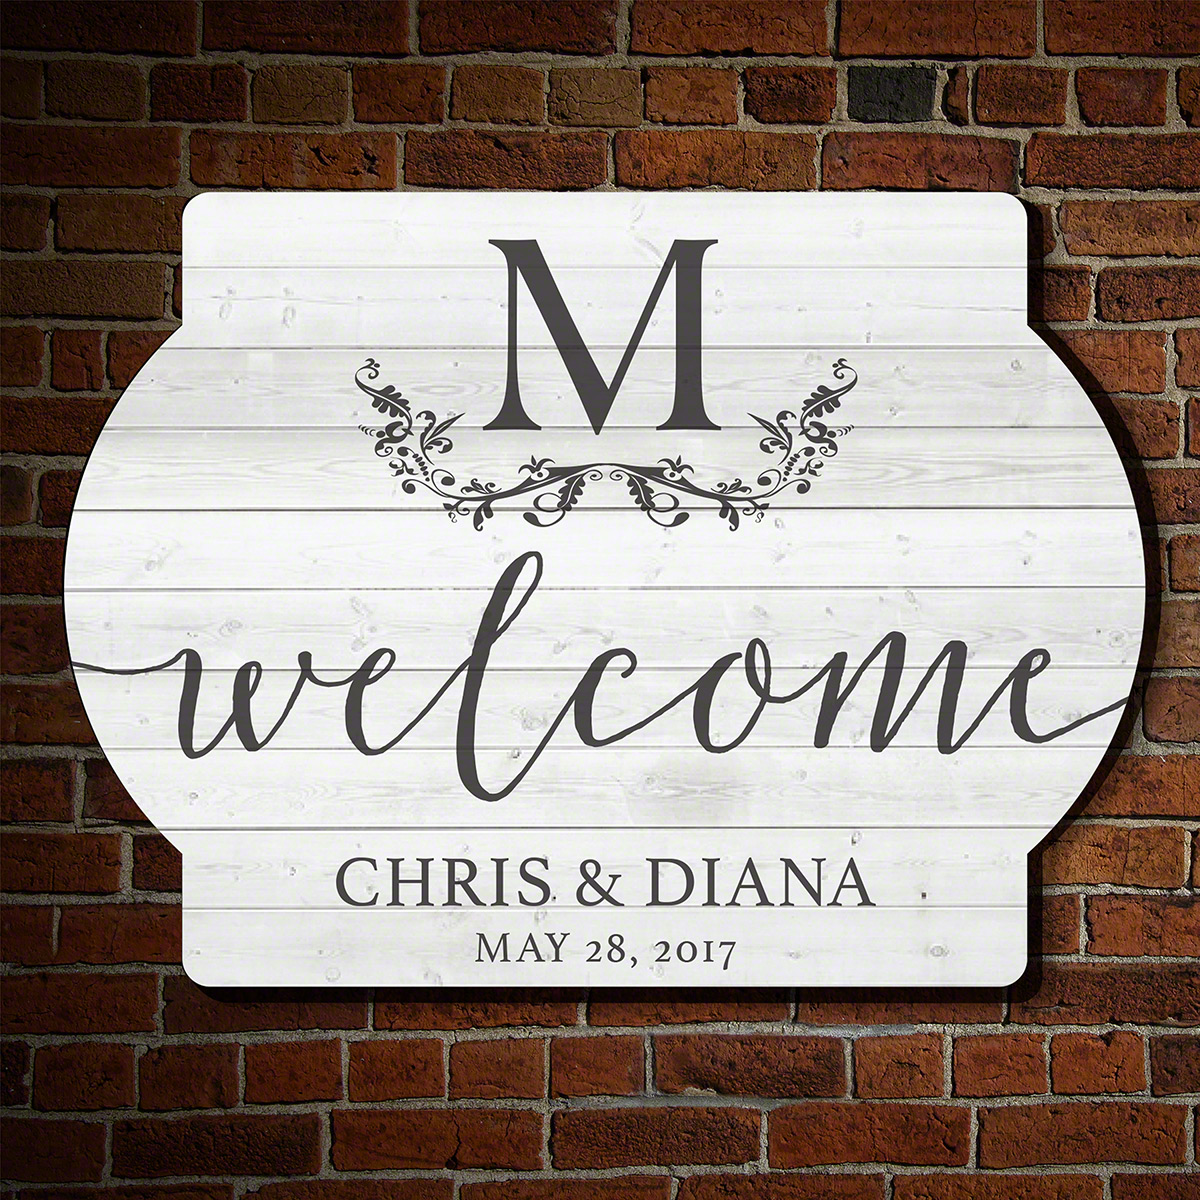 Wedding Welcome Custom Wooden Sign for Bride & Groom